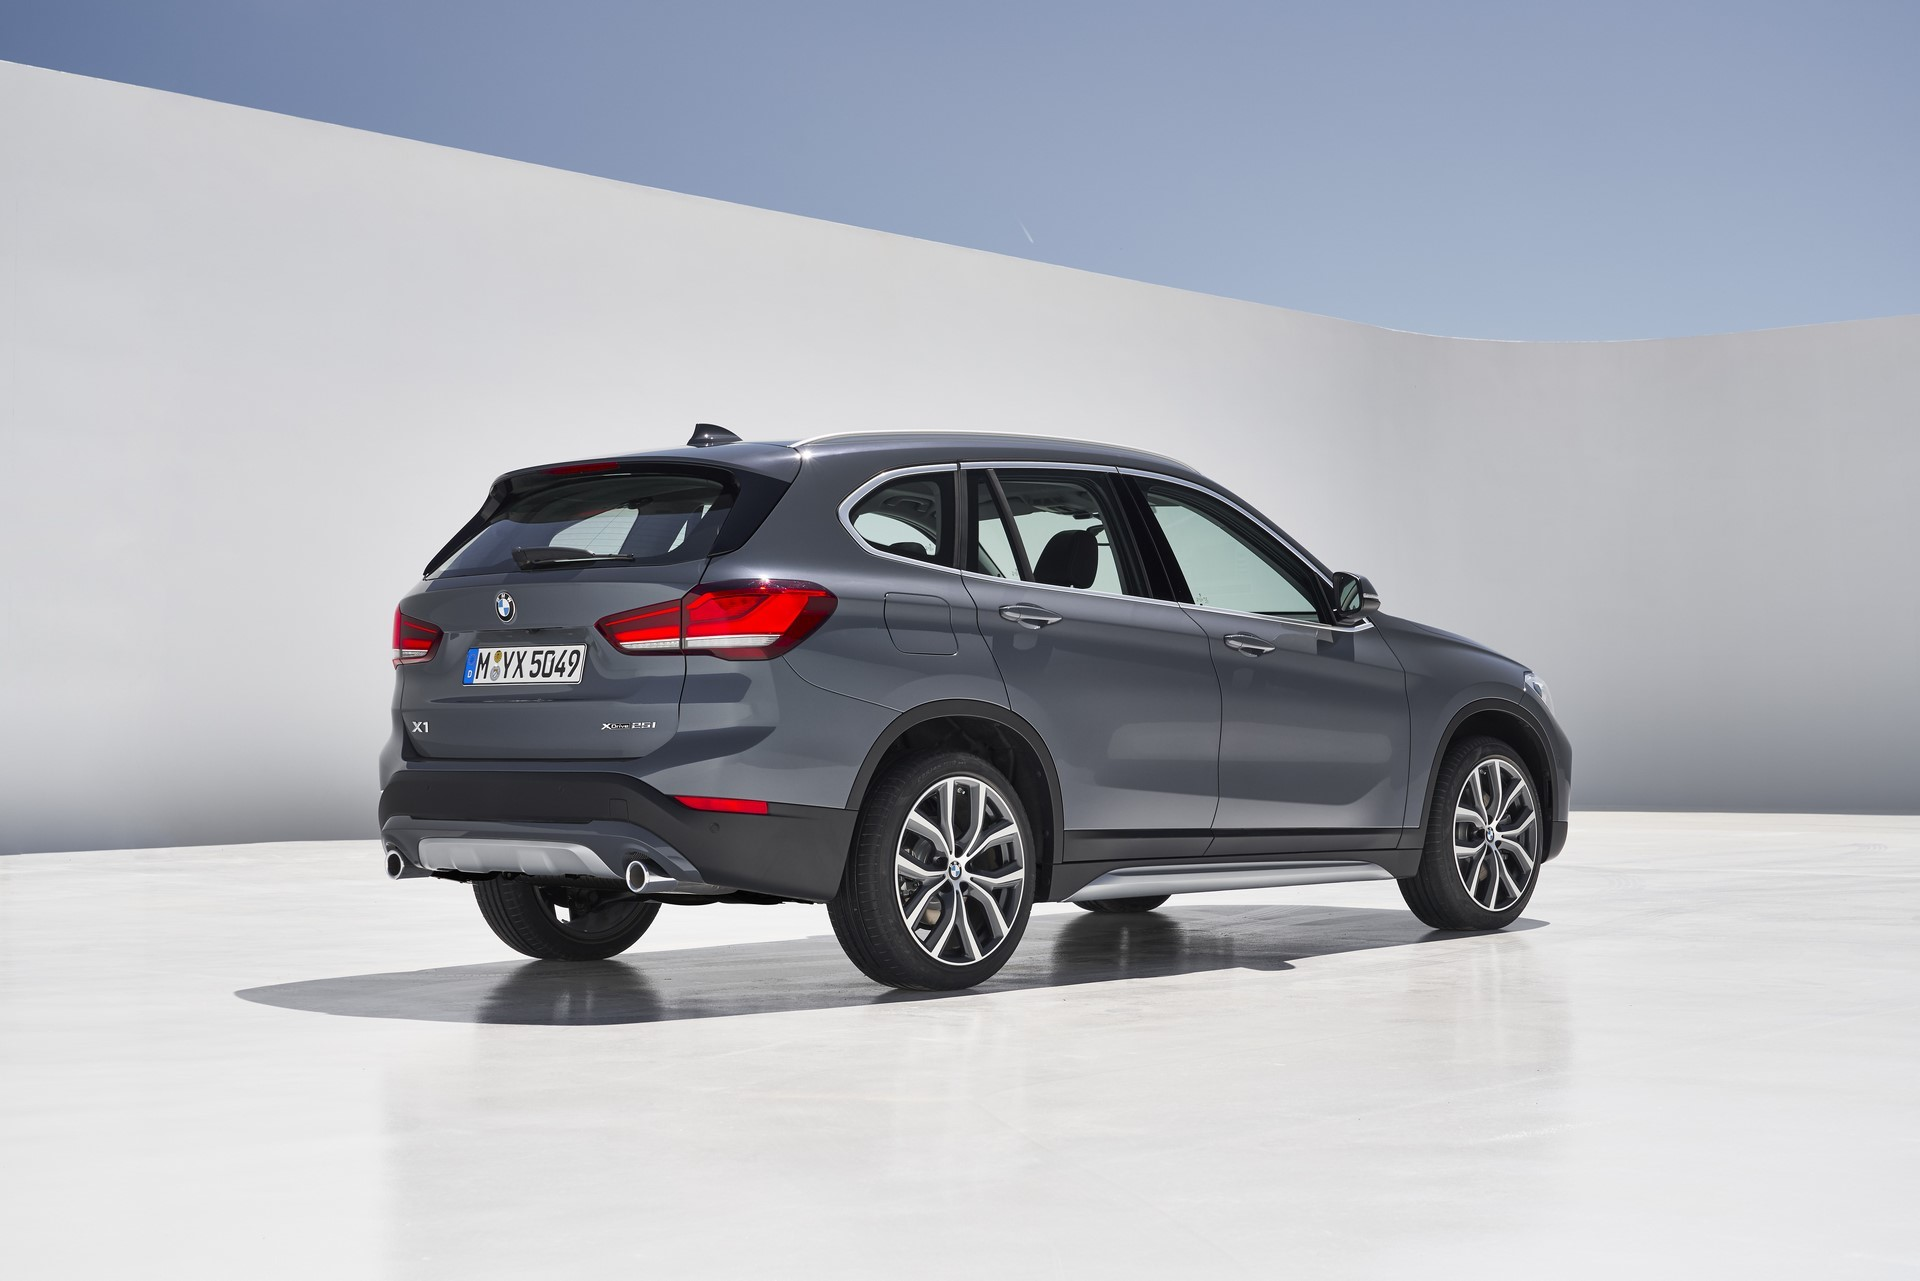 BMW-X1-Facelift-2019-31